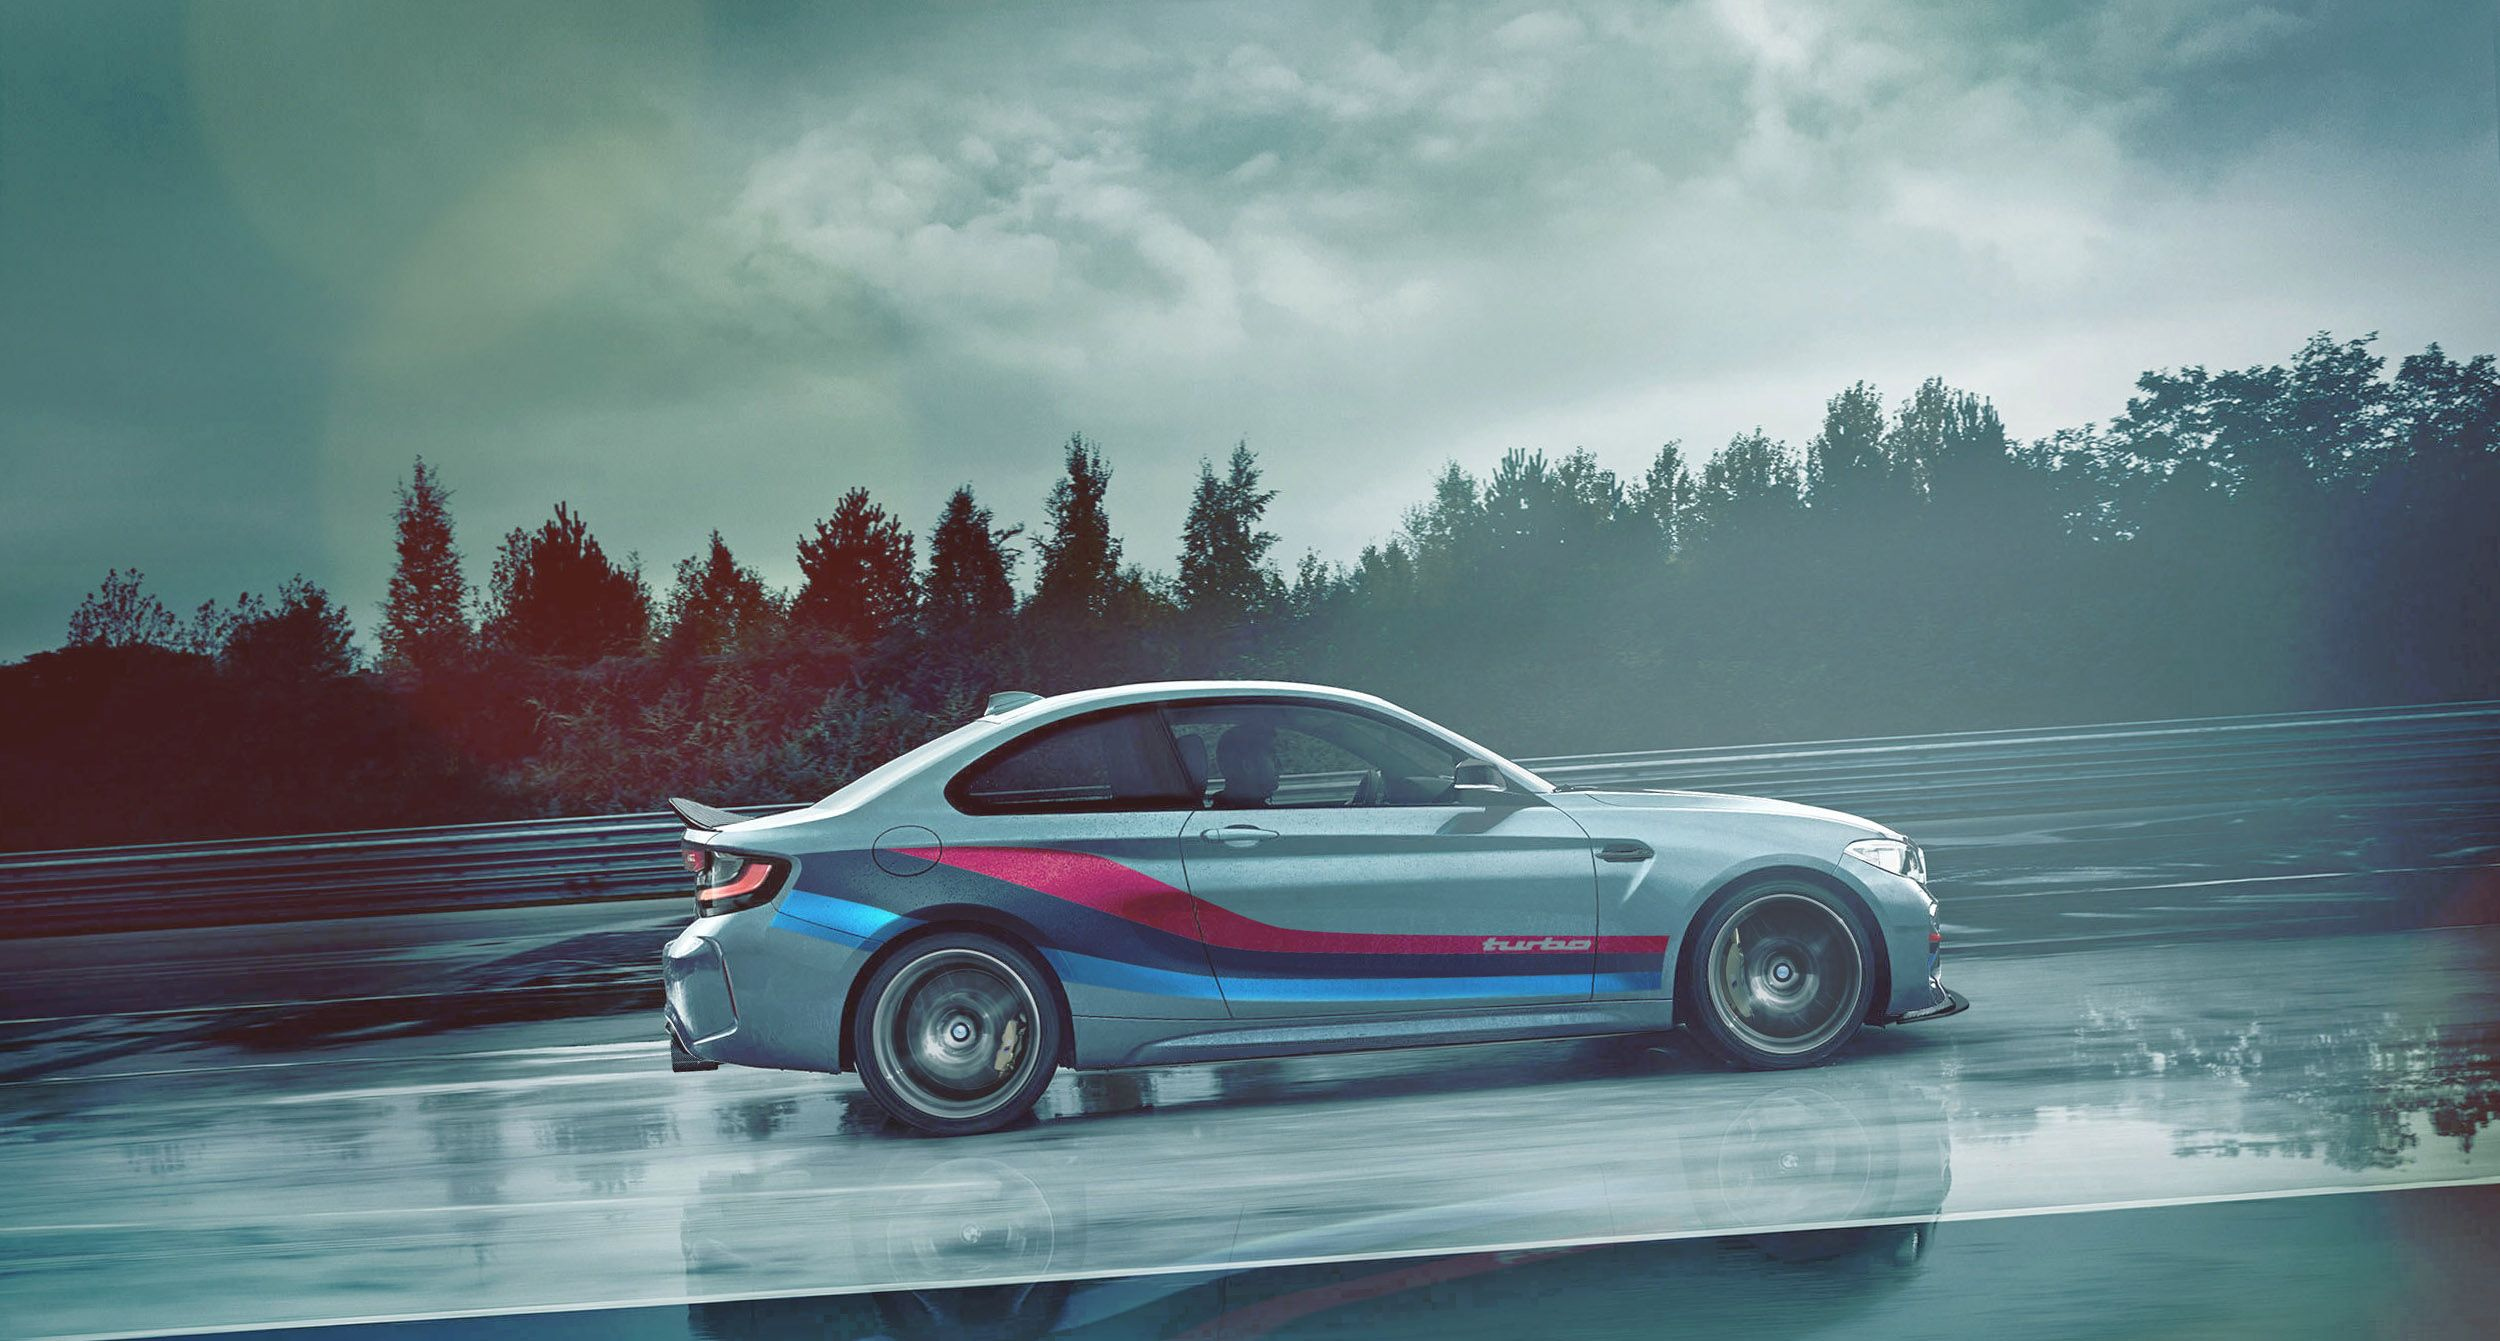 ///M2_turbo_package (*2017 project inspired by the 2002 hommage)